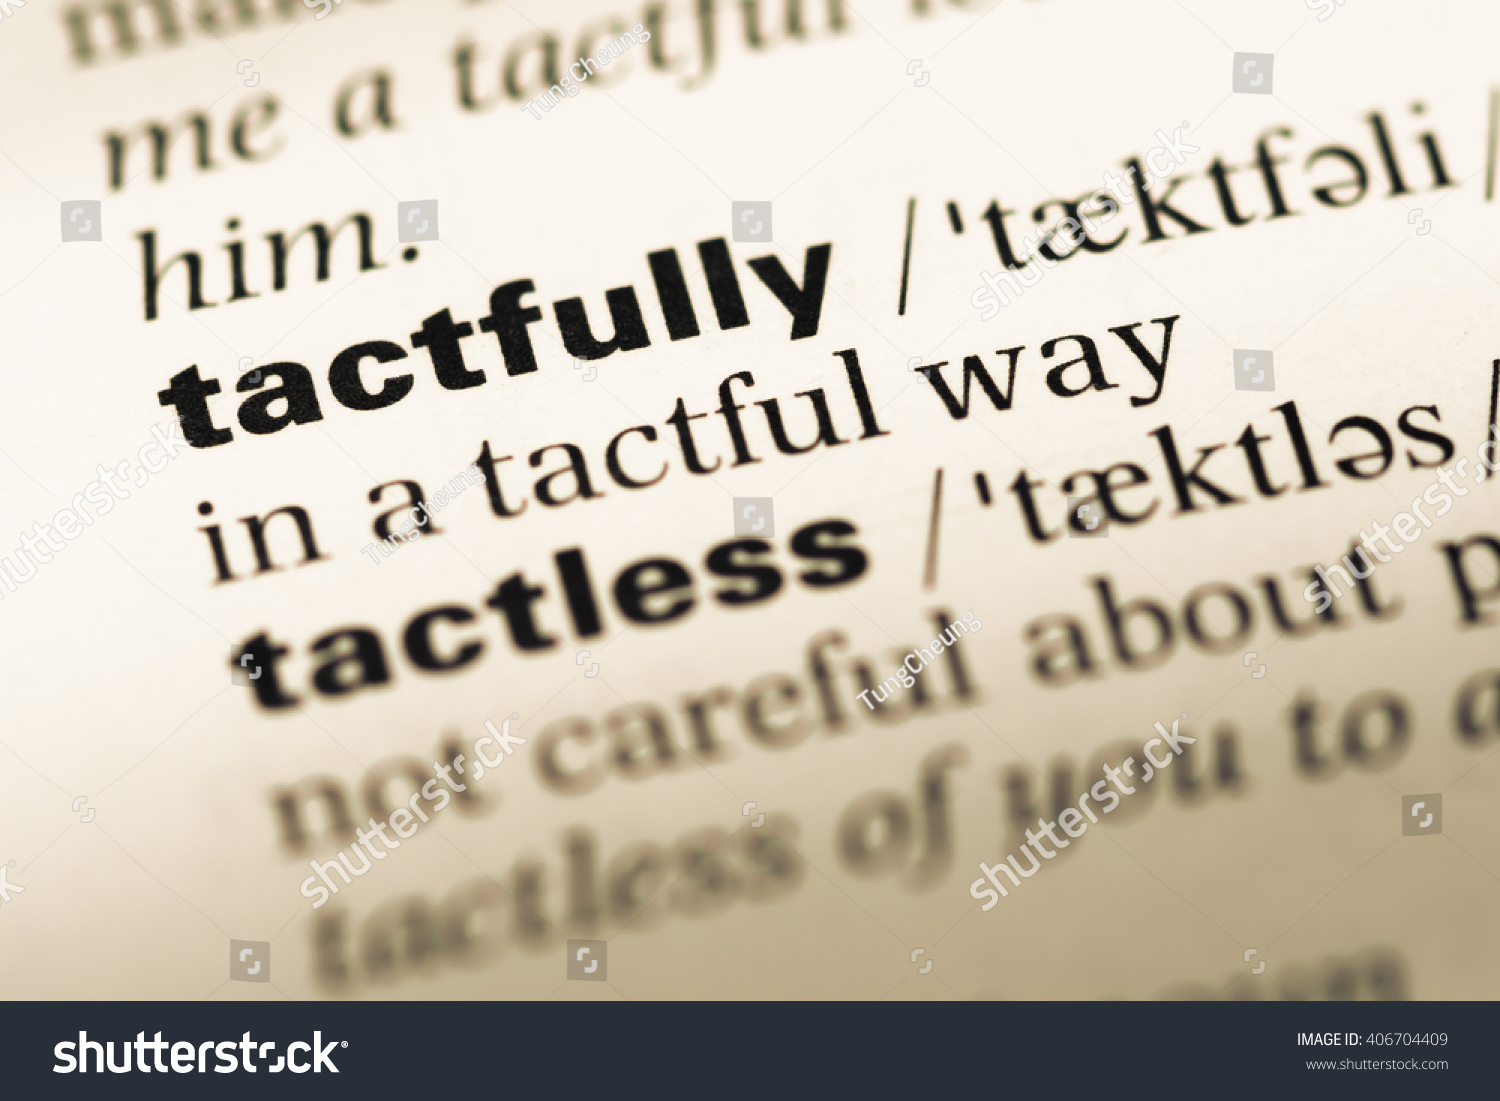 What is tactful meaning of the word 3